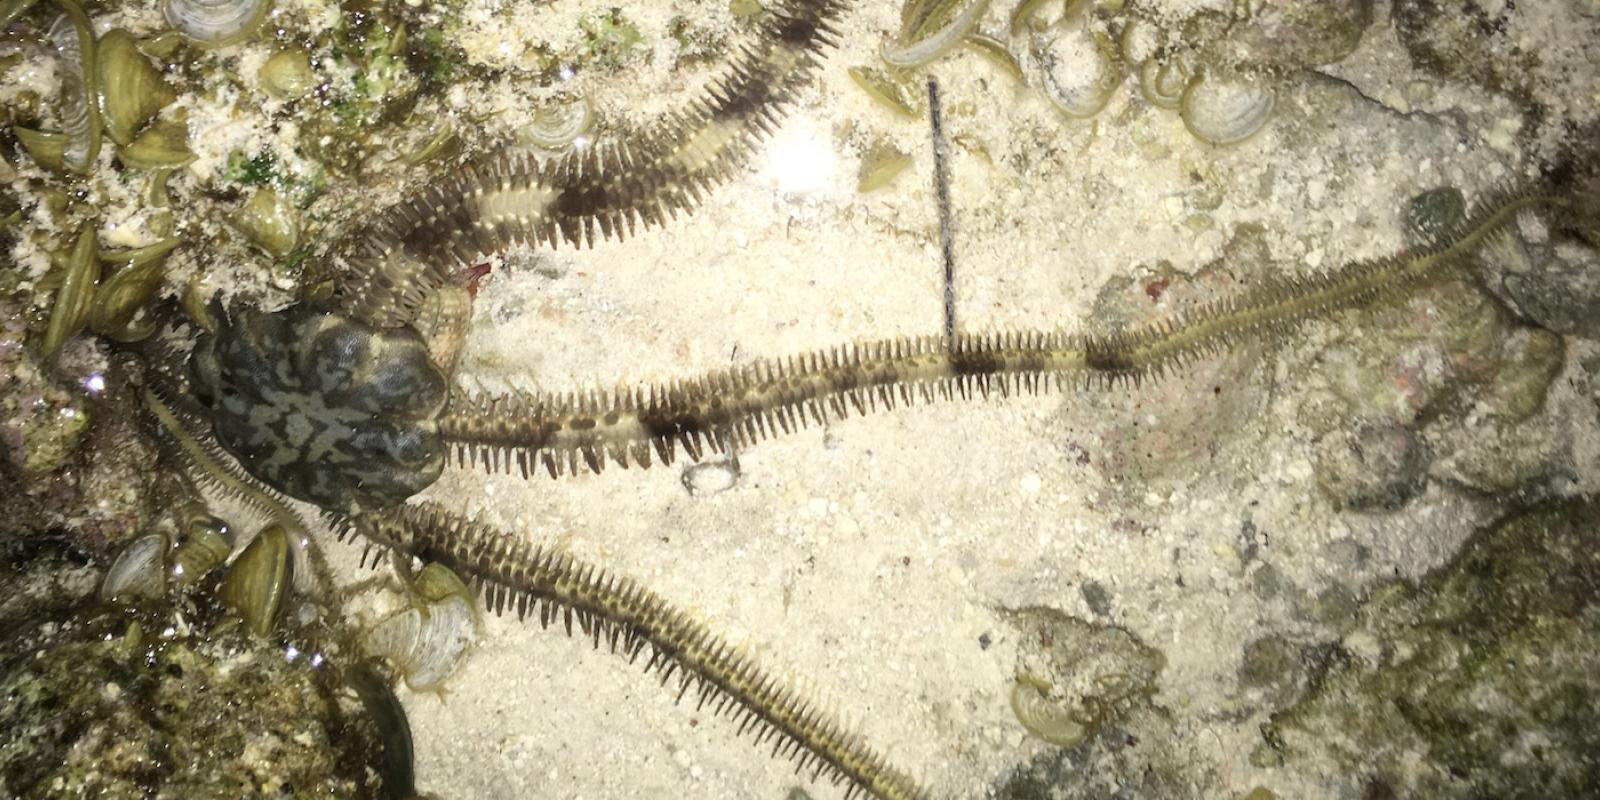 brittle star at night